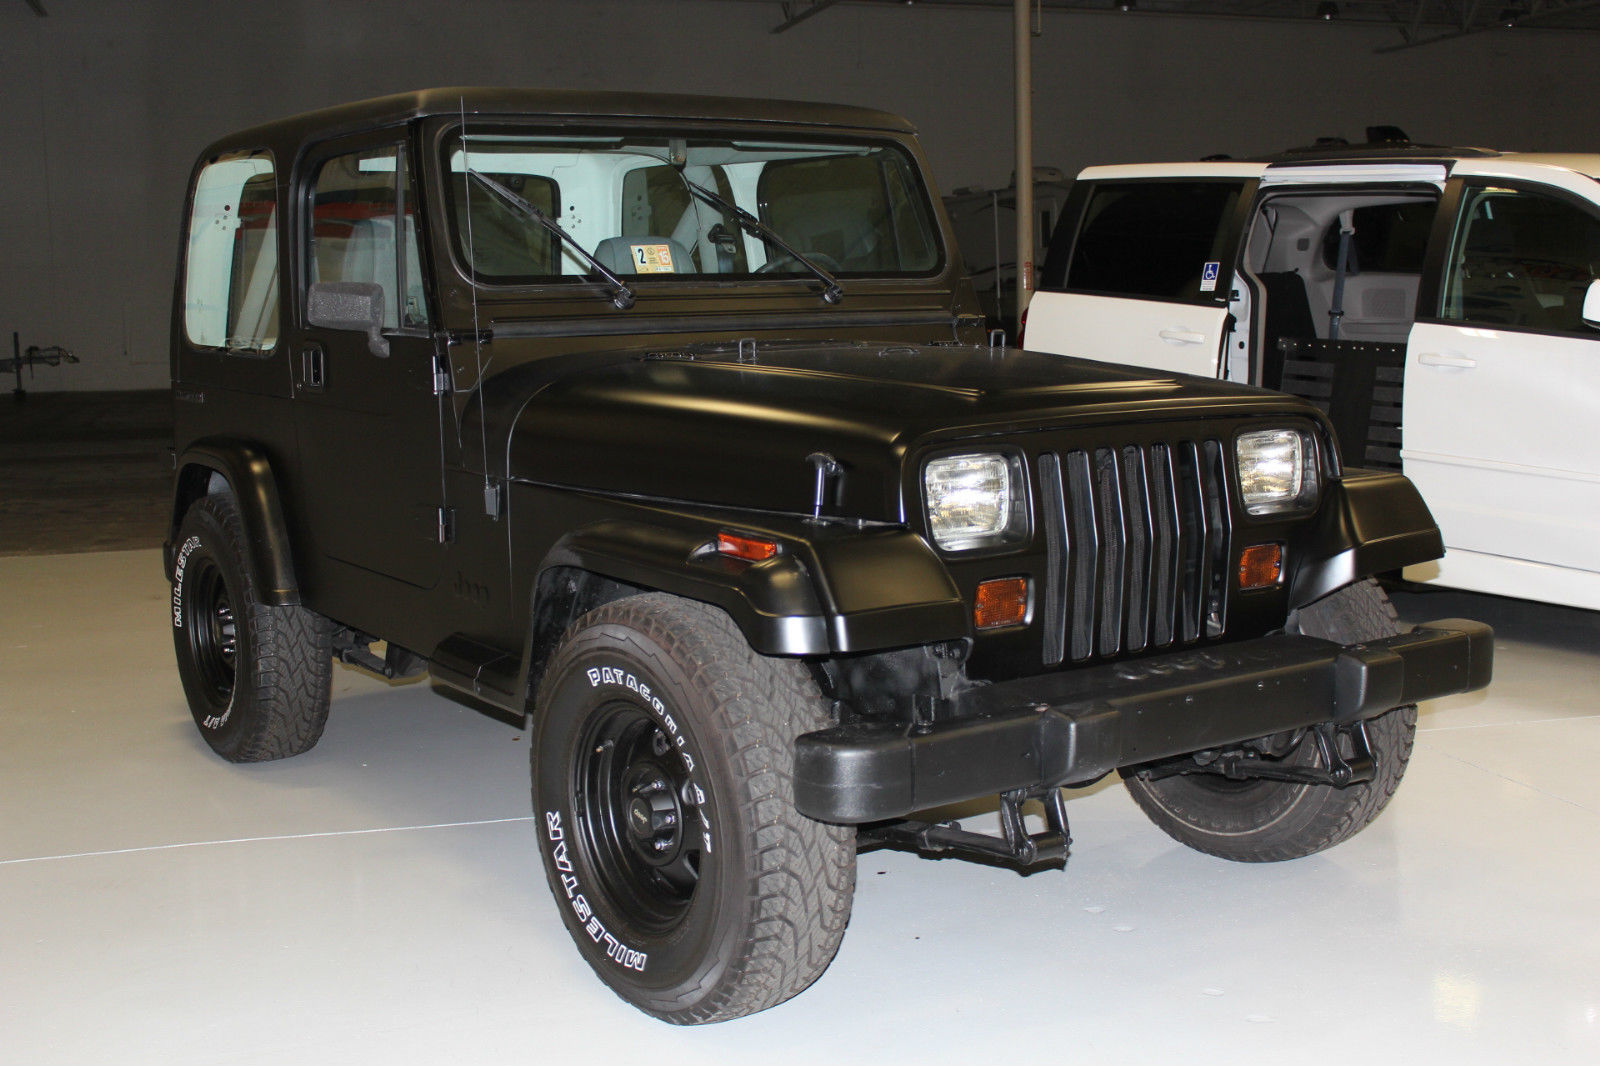 1990 jeep wrangler base sport utility 2 door 4 2l black hardtop new tires belts classic jeep. Black Bedroom Furniture Sets. Home Design Ideas